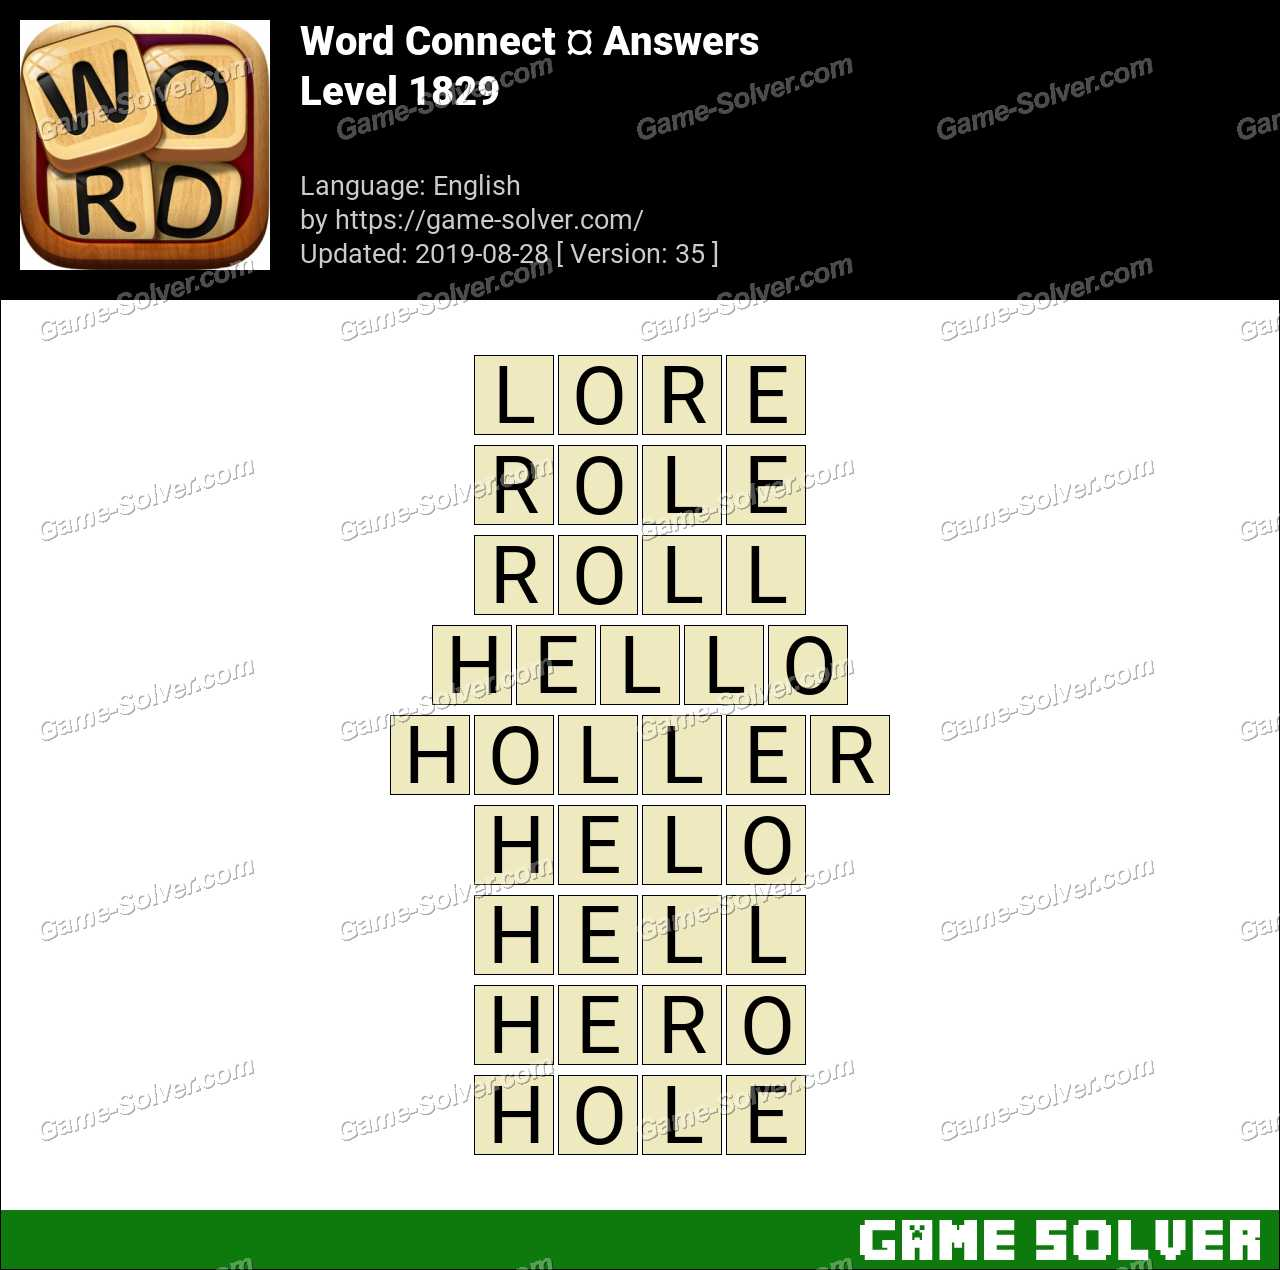 Word Connect Level 1829 Answers